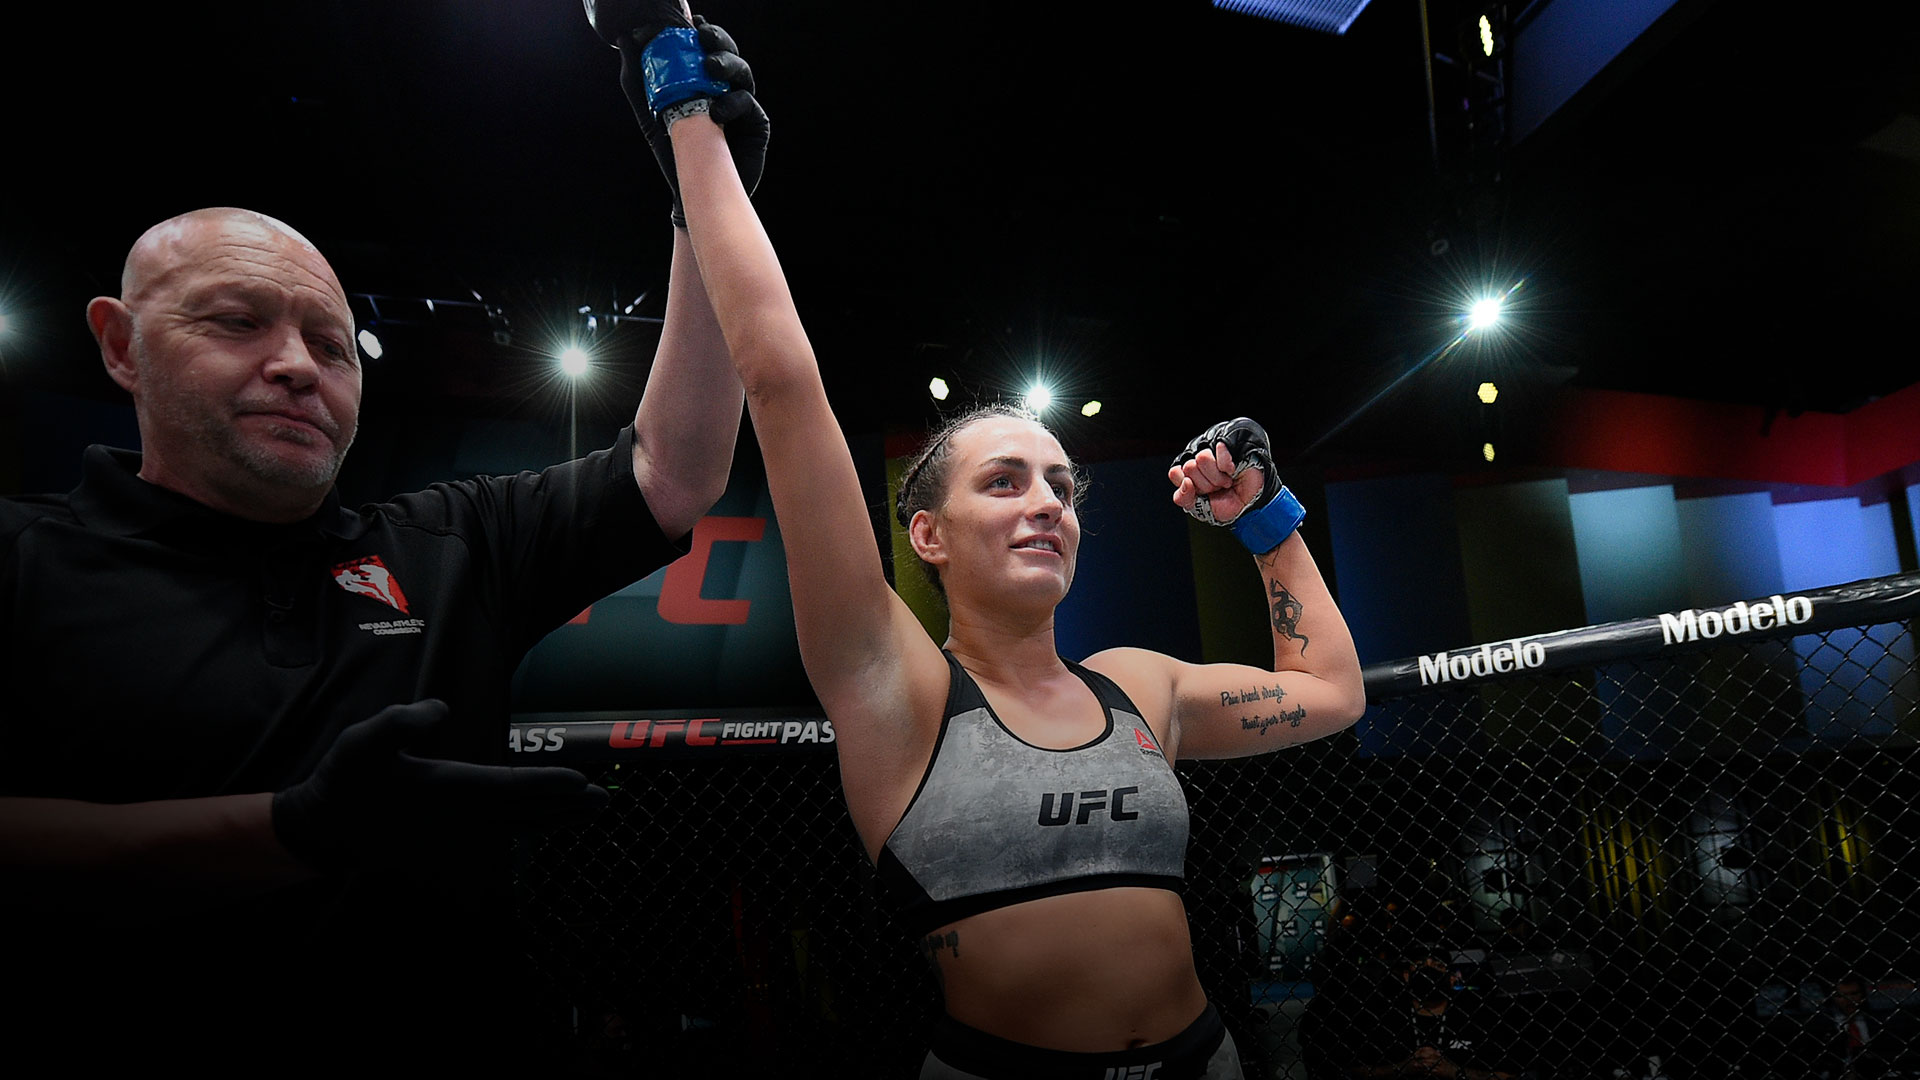 Casey O'Neill of Australia reacts after her victory over Shana Dobson in a flyweight bout during the UFC Fight Night event at UFC APEX on February 20, 2021 in Las Vegas, Nevada. (Photo by Chris Unger/Zuffa LLC)